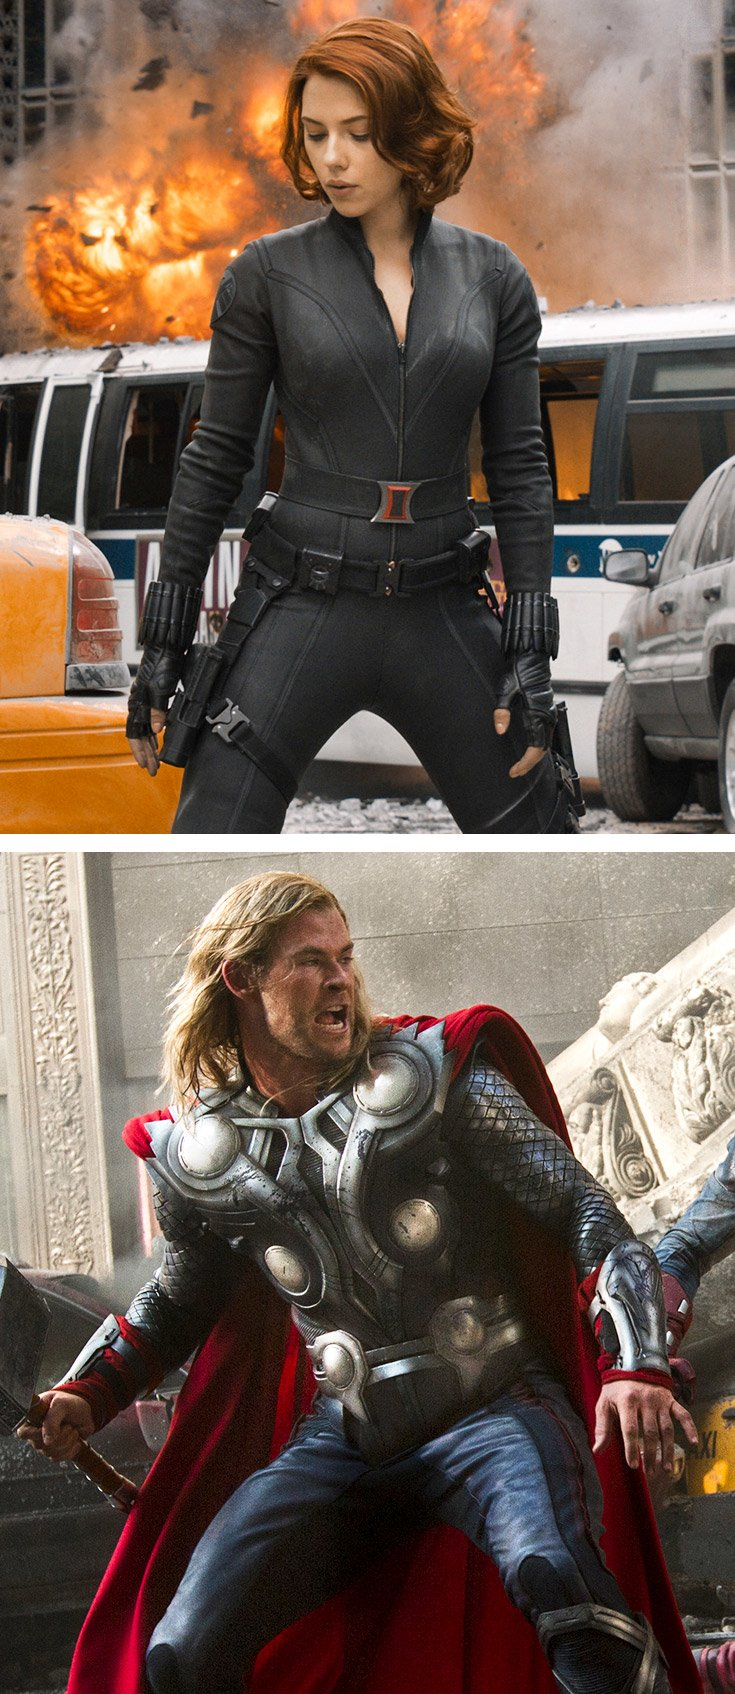 avengers interview chris hemsworth and scarlett johansson s avengers interview chris hemsworth and scarlett johansson s personal trainer